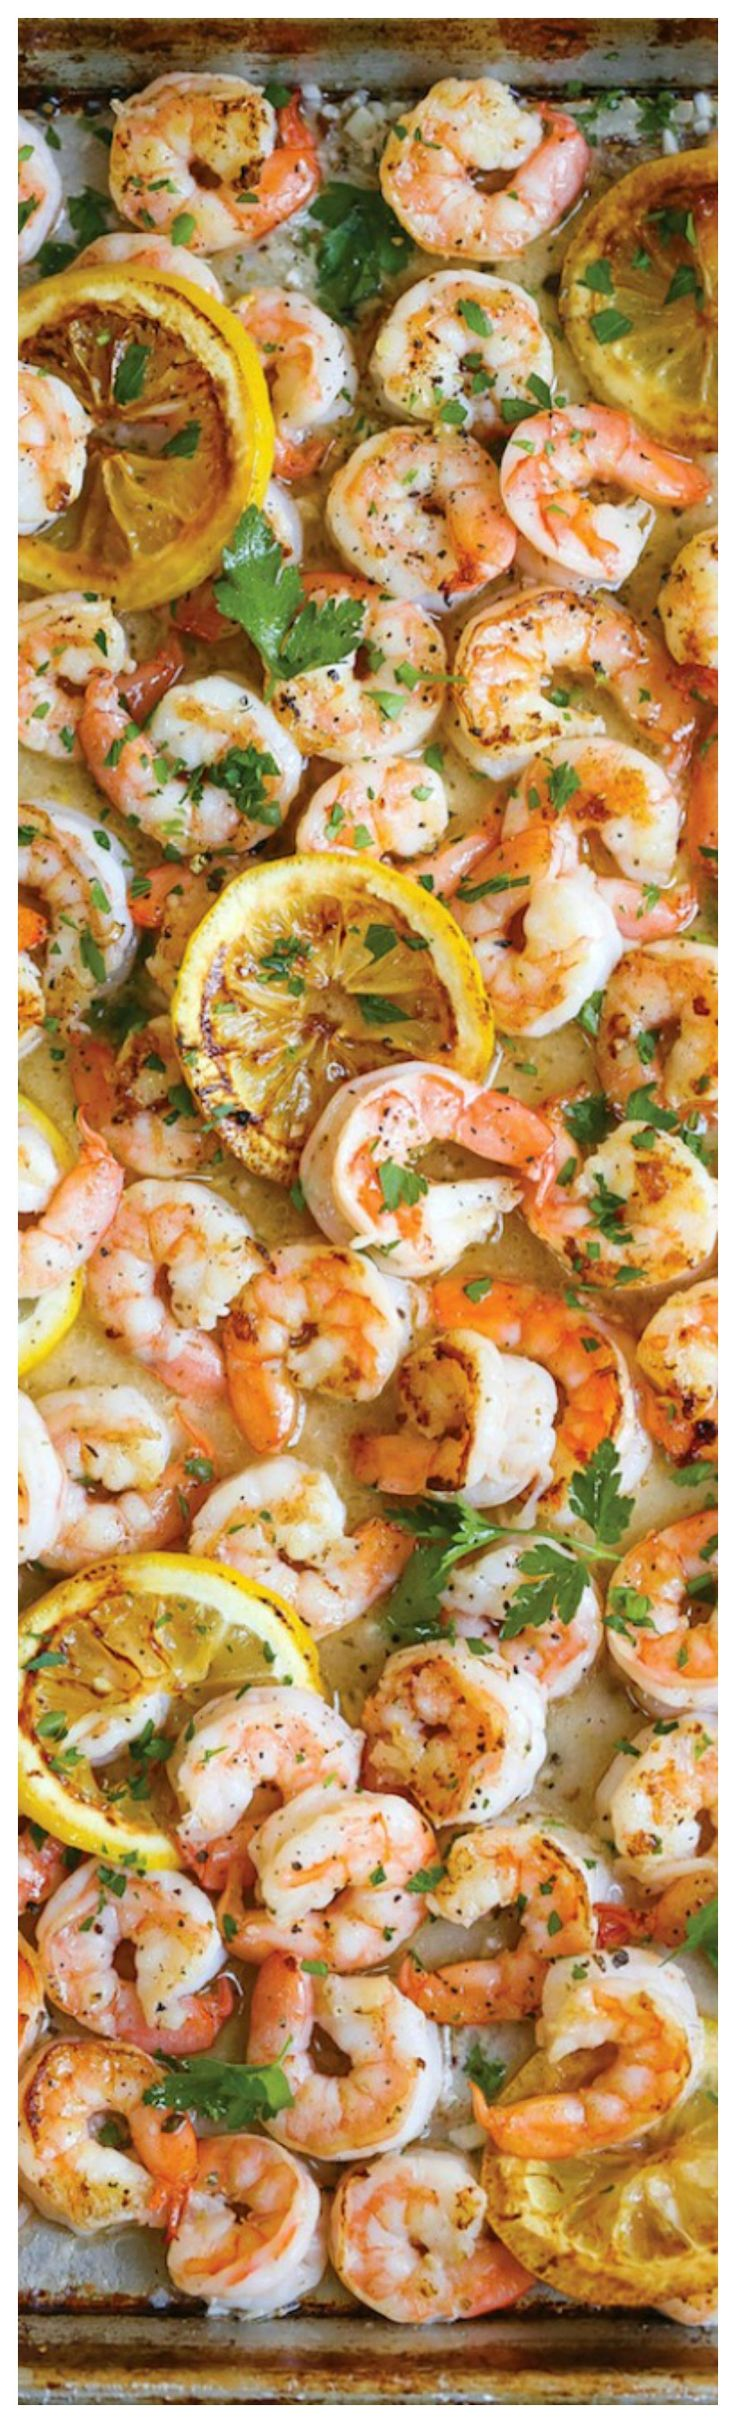 Sheet Pan Garlic Butter Shrimp ~ so easy and delicious flavor. Use less butter next time